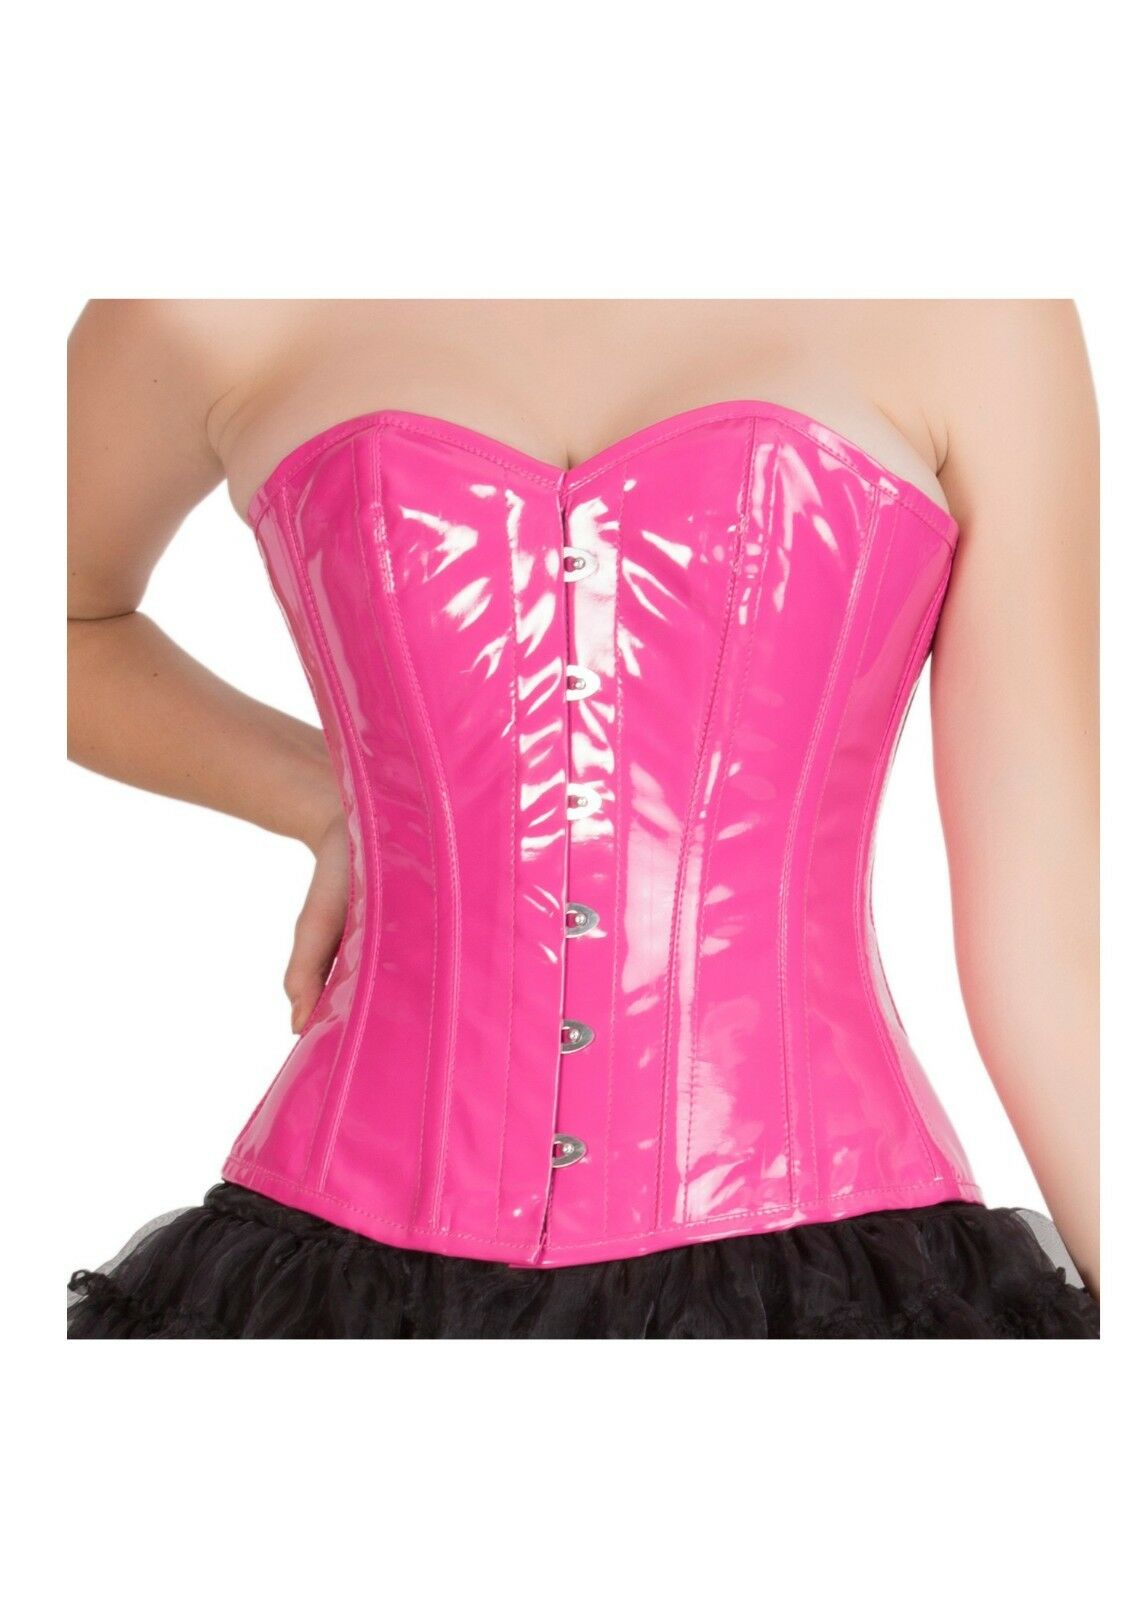 Pink PVC Faux Leather Burlesque Gothic Waist Training Overbust Corset Costume